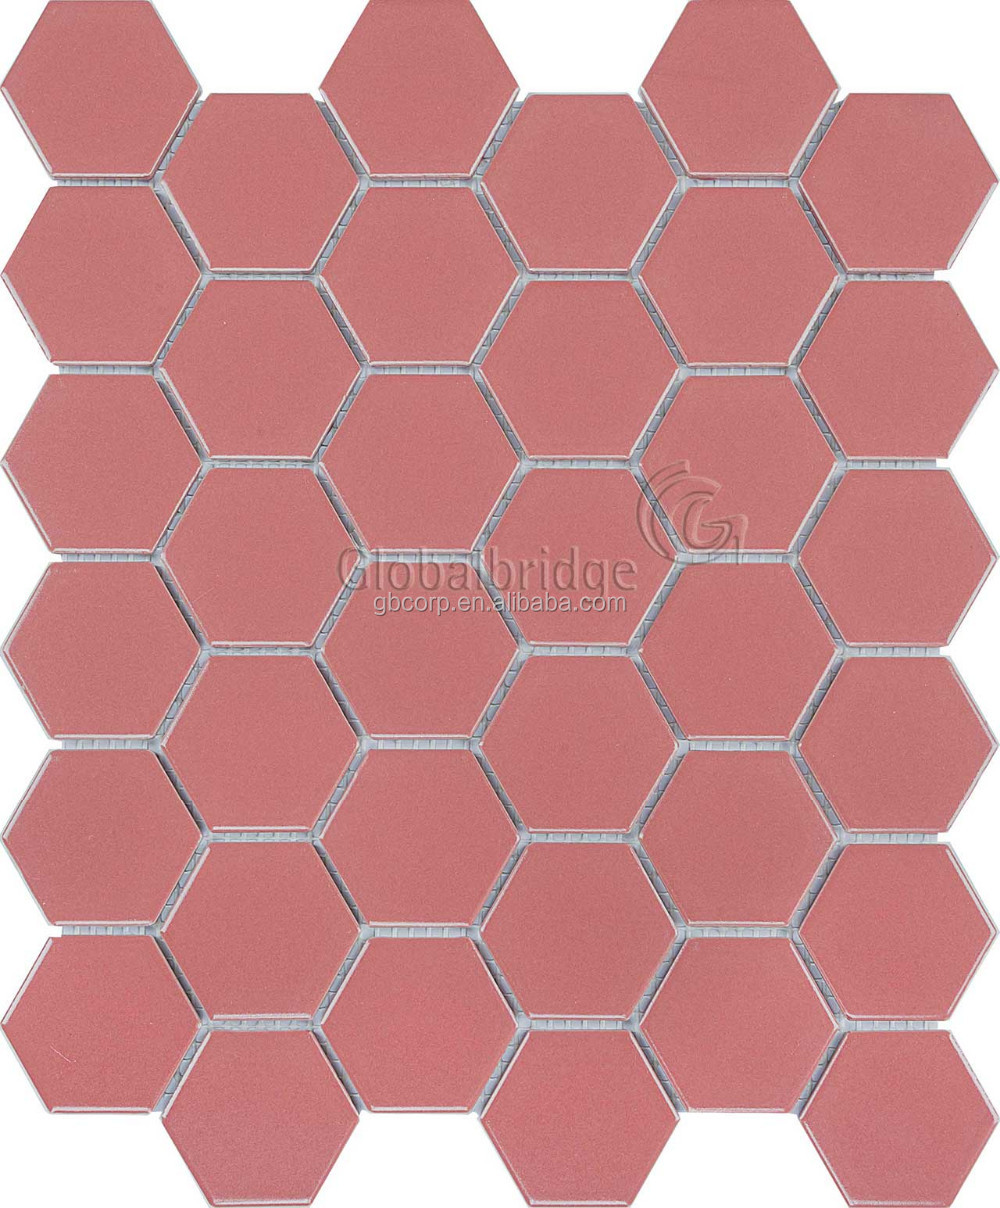 Wholesale tiles red ceramic wall tile floor ceramic 60HTN902M